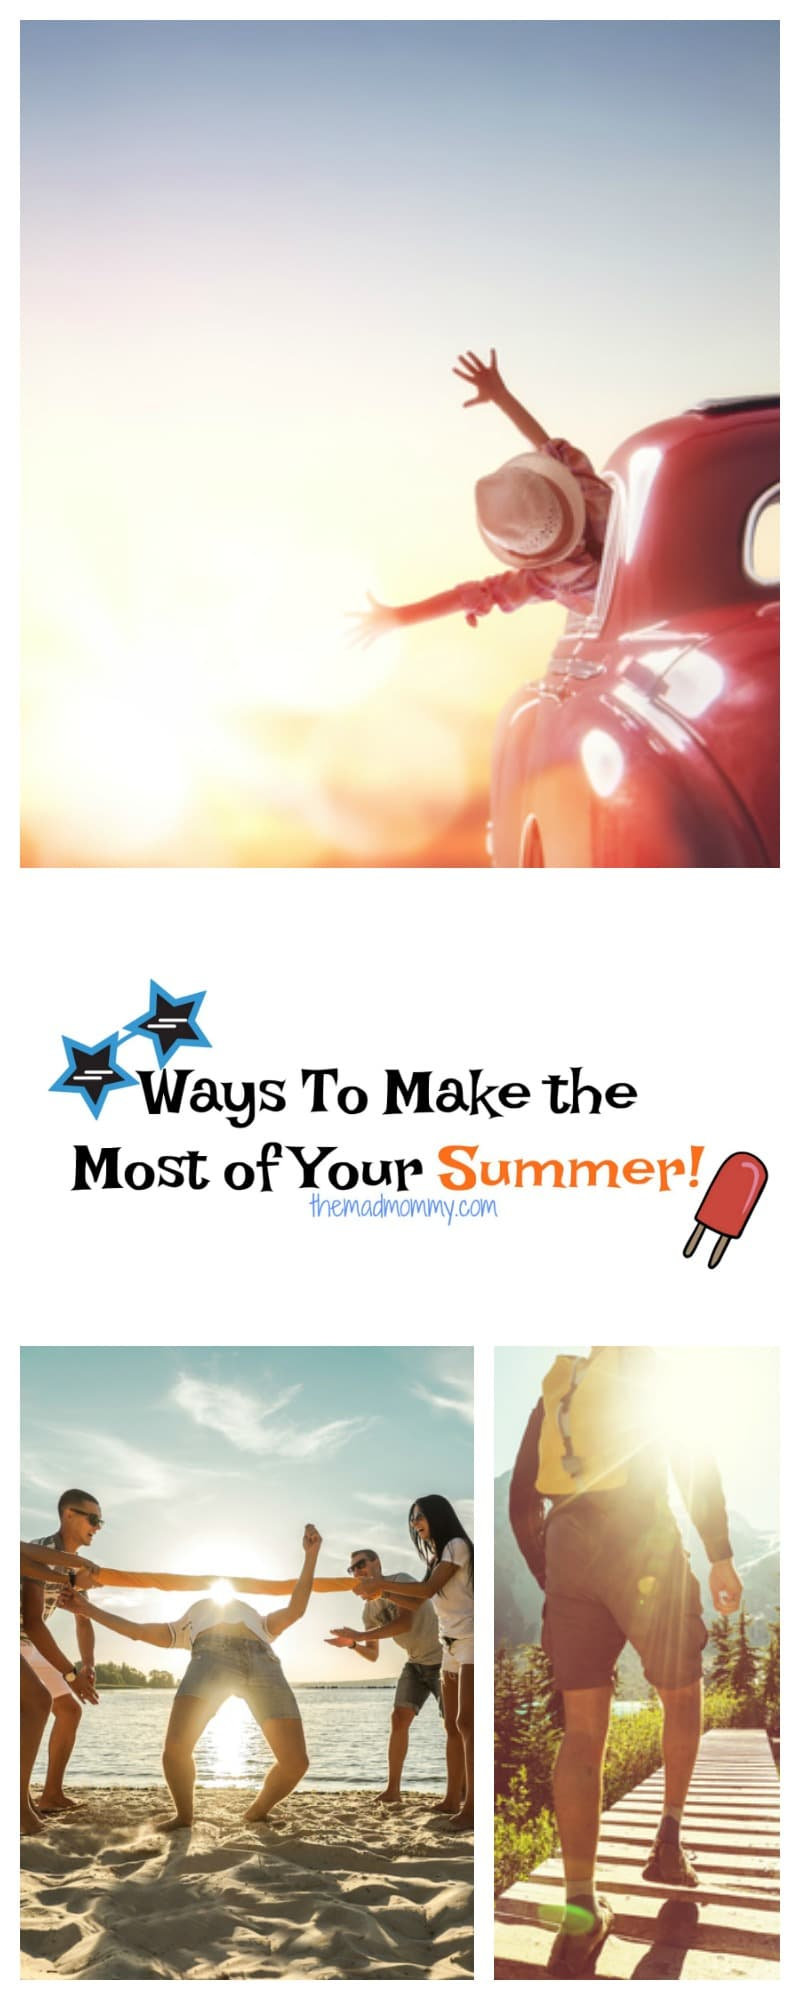 Here are some tips for both you and your children to make the most of your summer!